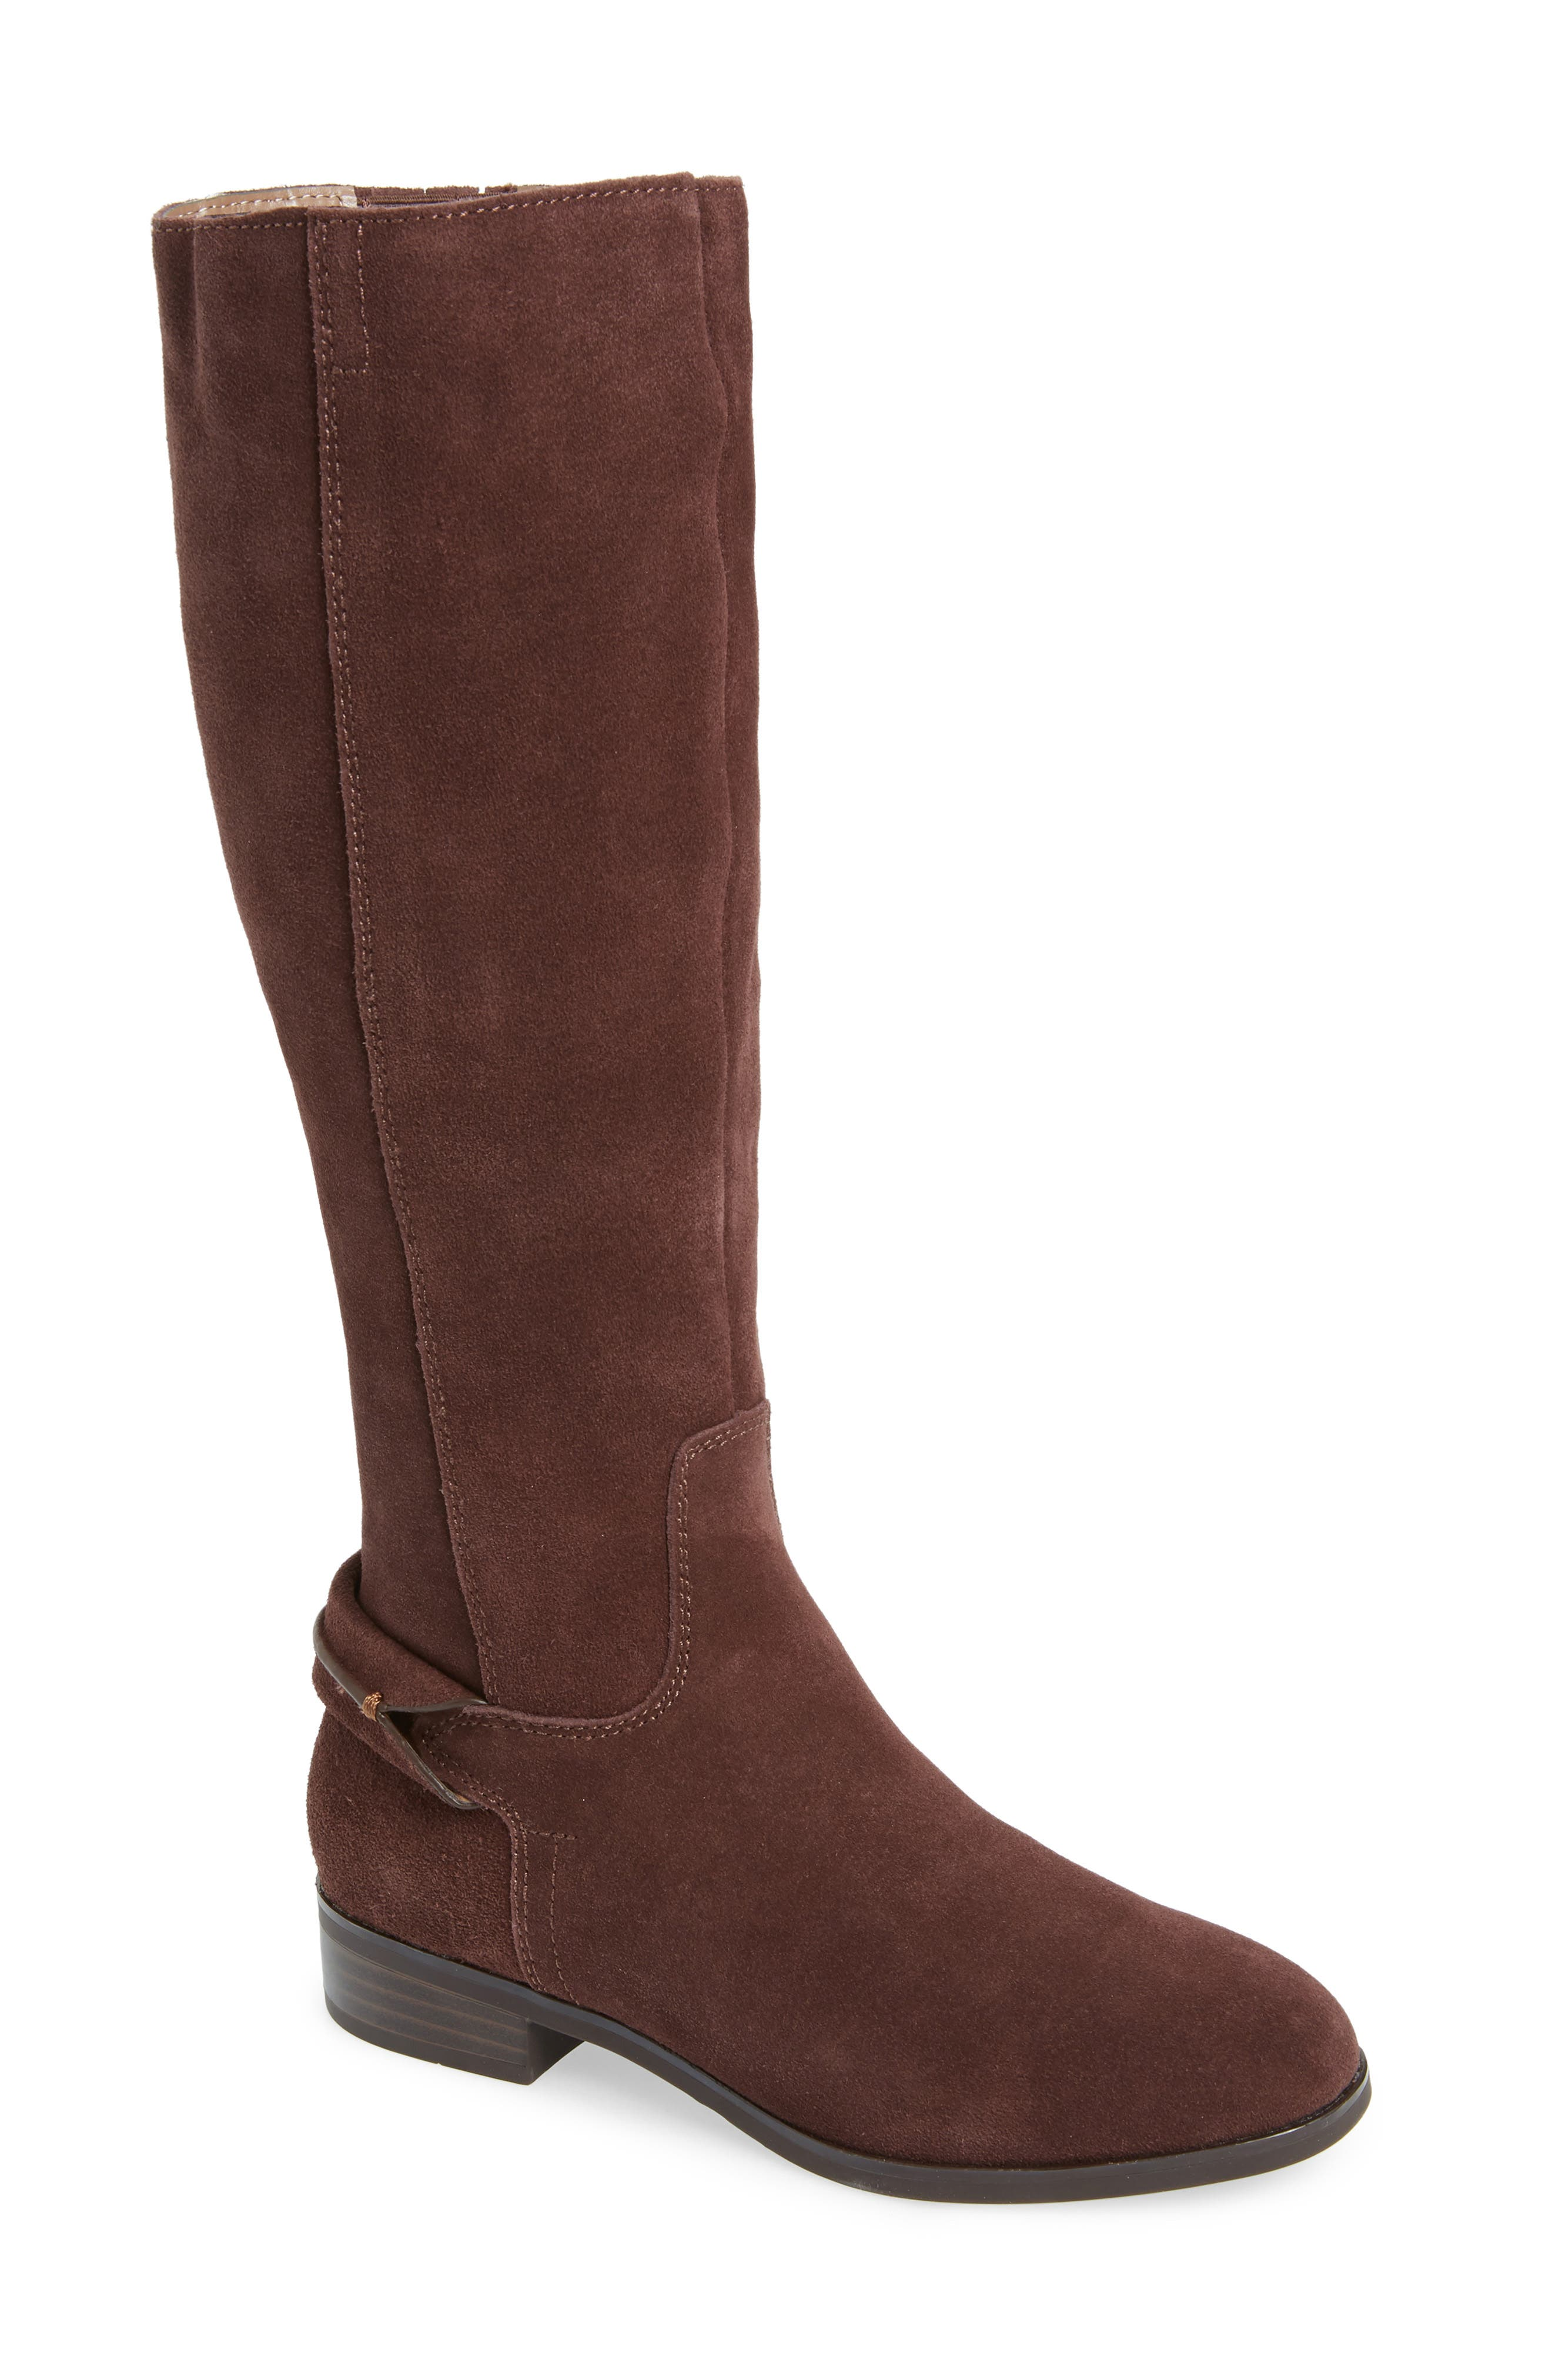 Kensie Cheverly Knee High Boot, Brown